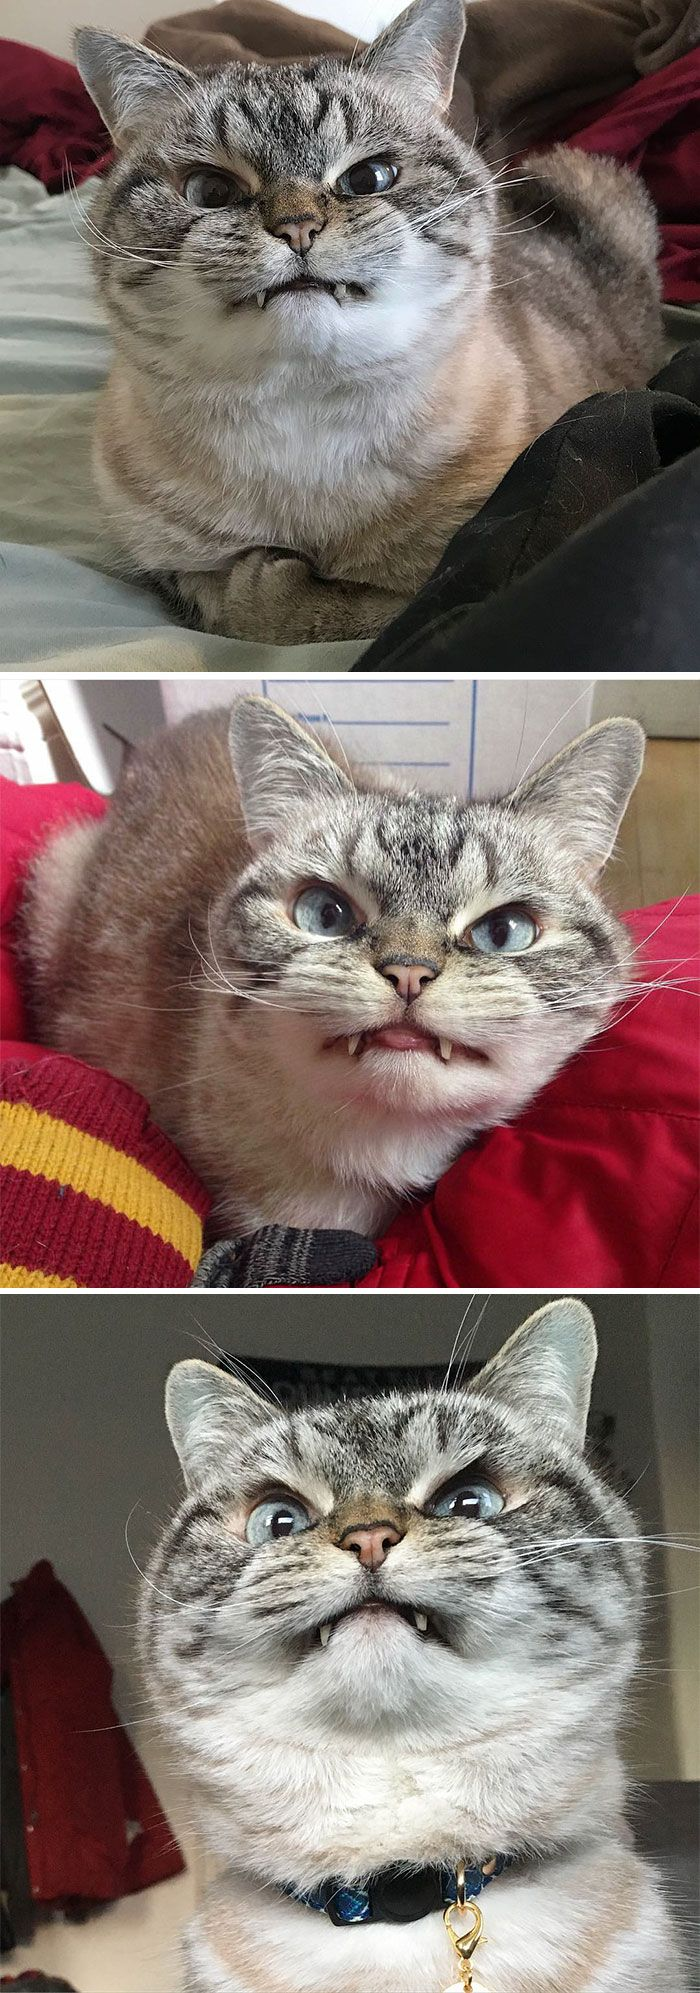 10+ Of The Word's Angriest Cats Ever Who Have Had Enough Of Your BS